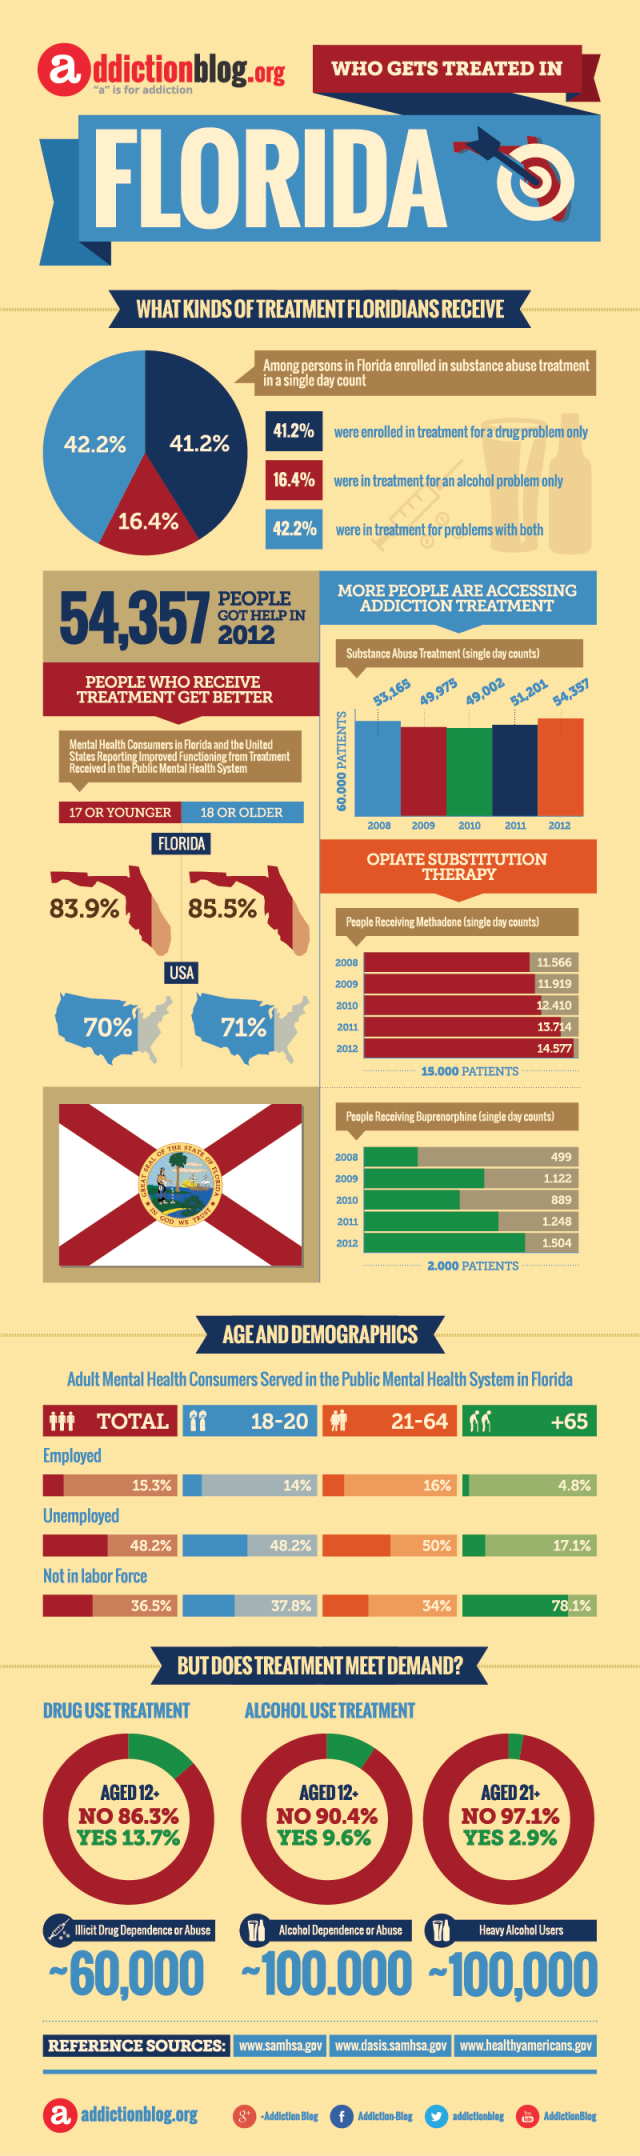 Rehab facilities in Florida: Who's getting treatment in FL? (INFOGRAPHIC)